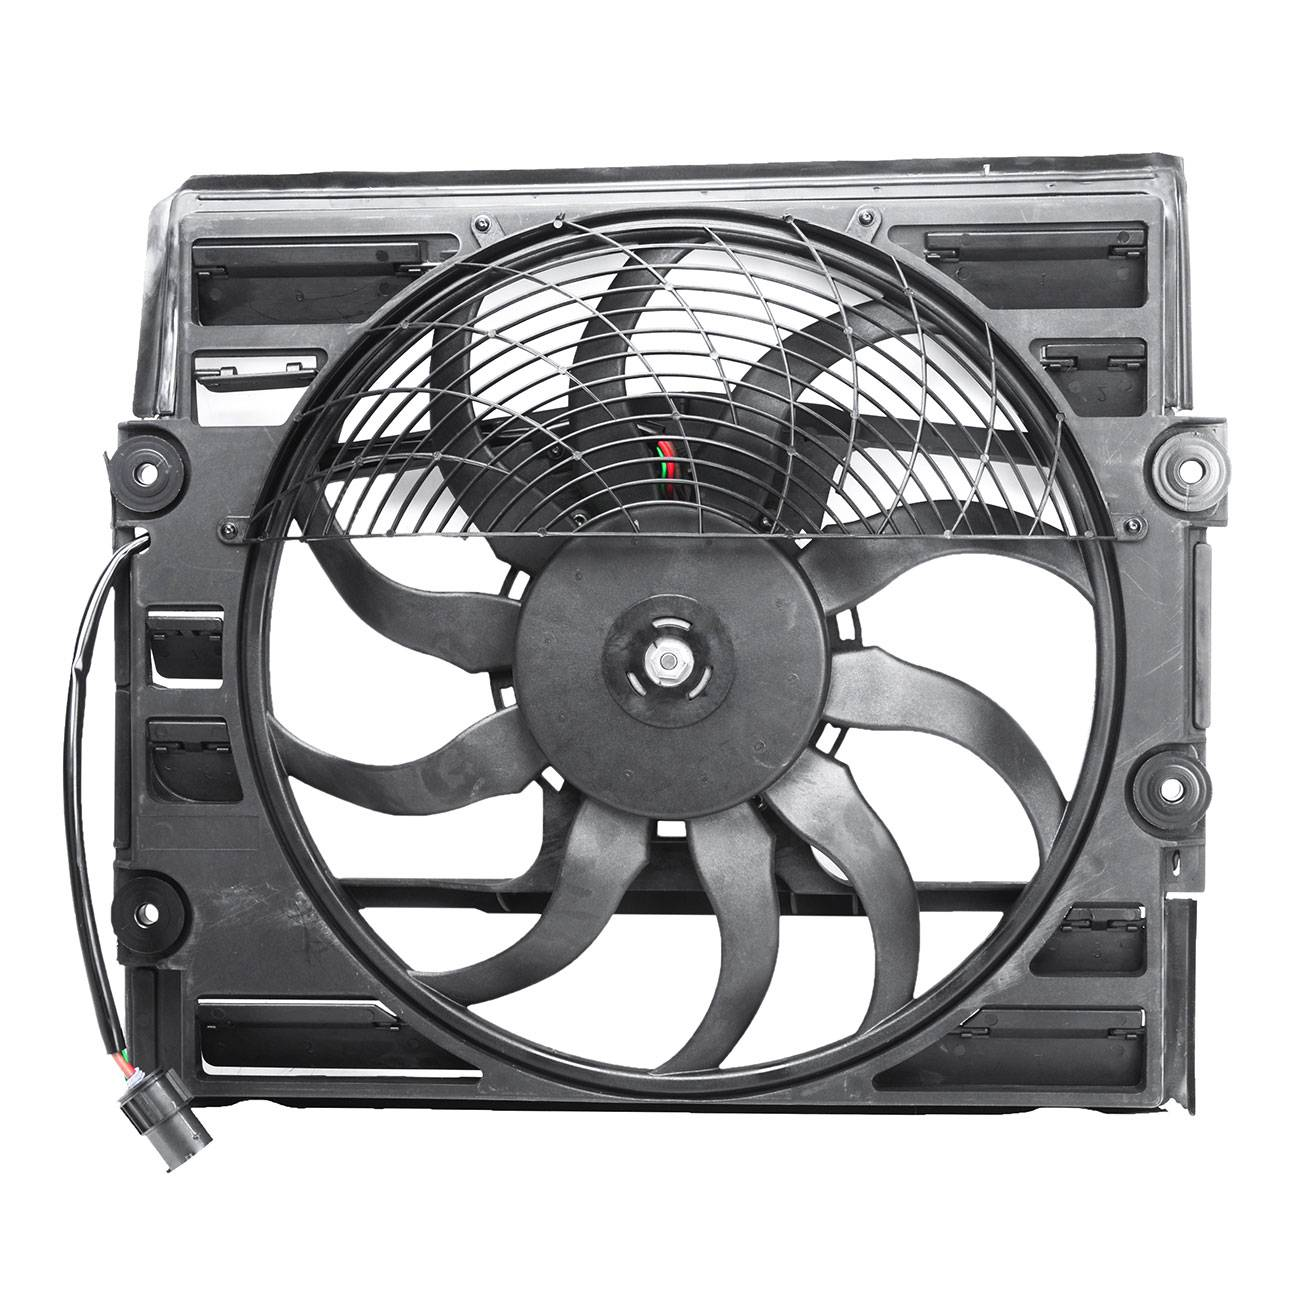 Bapmic 64546921383 A//C Condenser Brushless Cooling Fan Assembly for BMW 7 Series E38 Z8